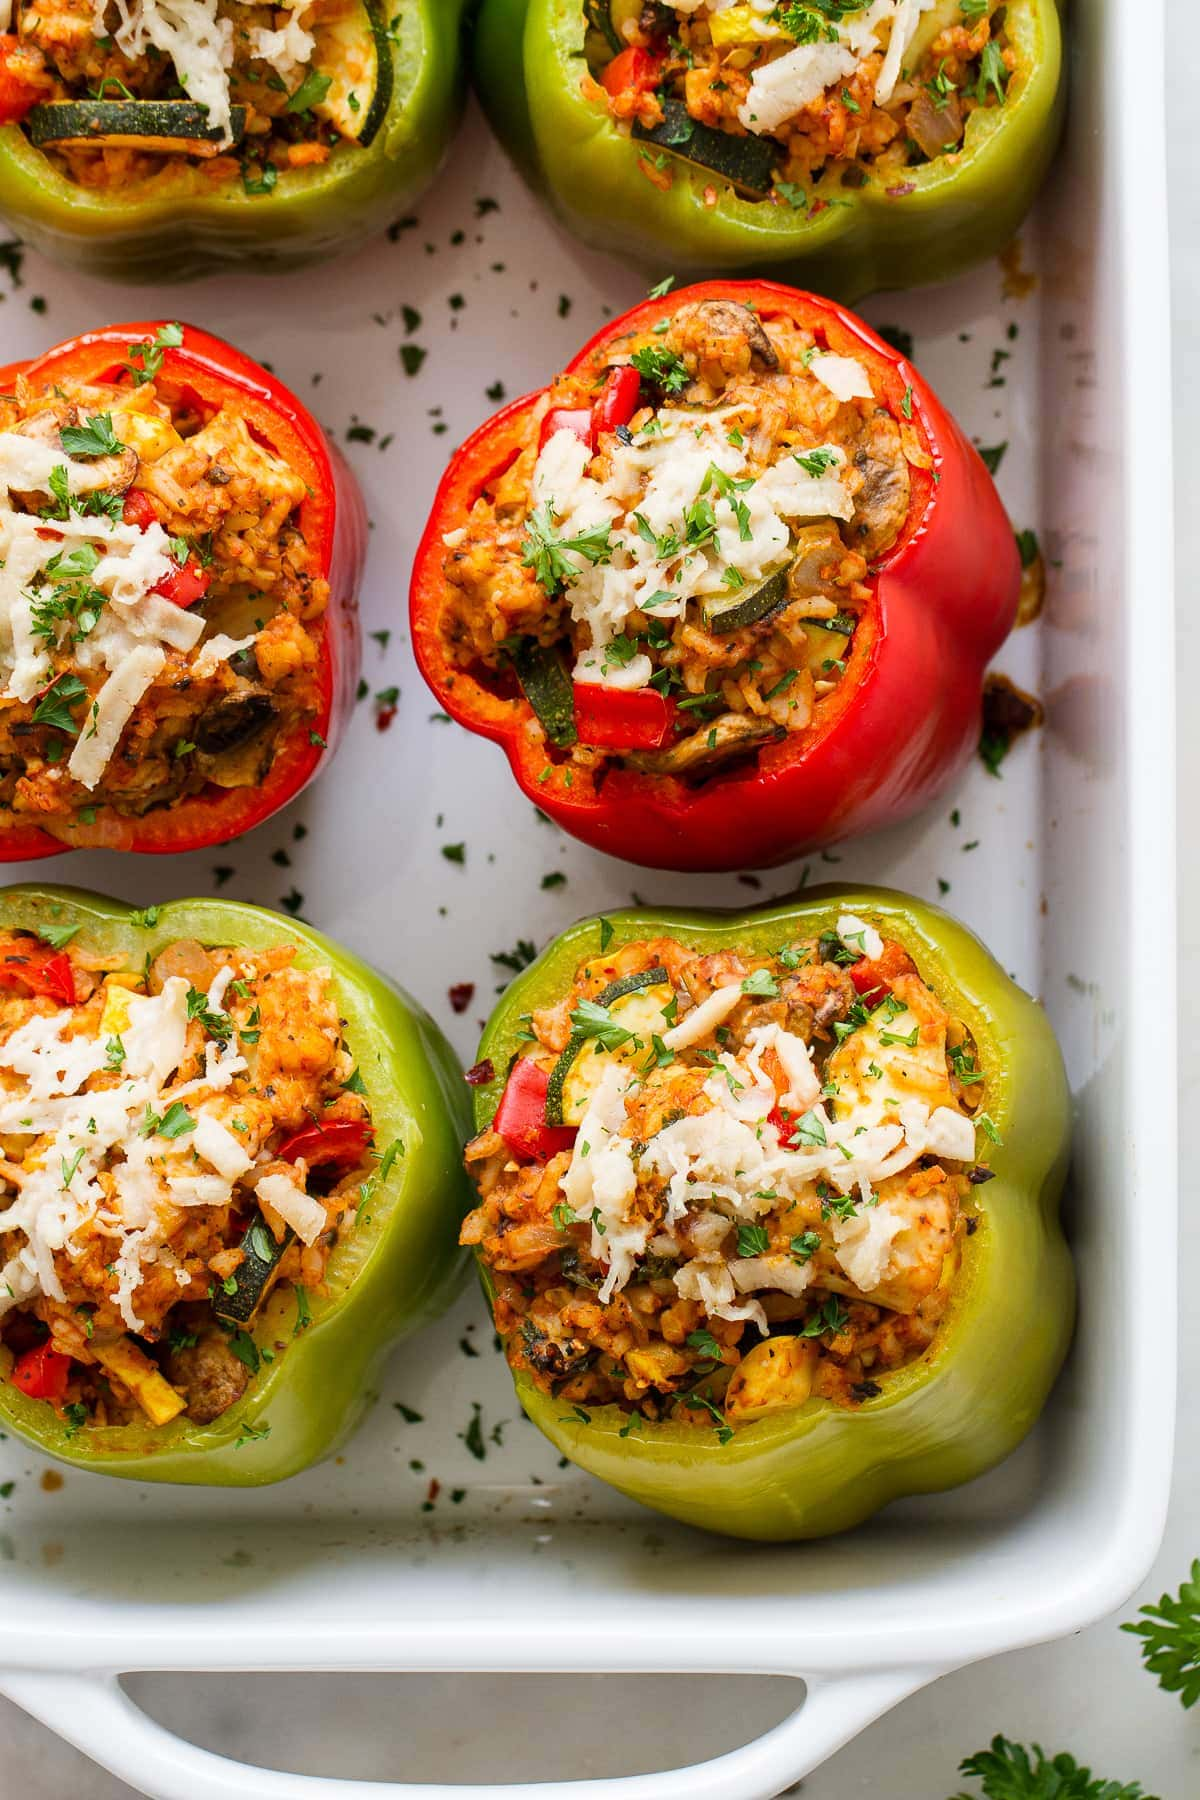 top down view of vegan stuffed bell peppers freshly baked in a baking dish.